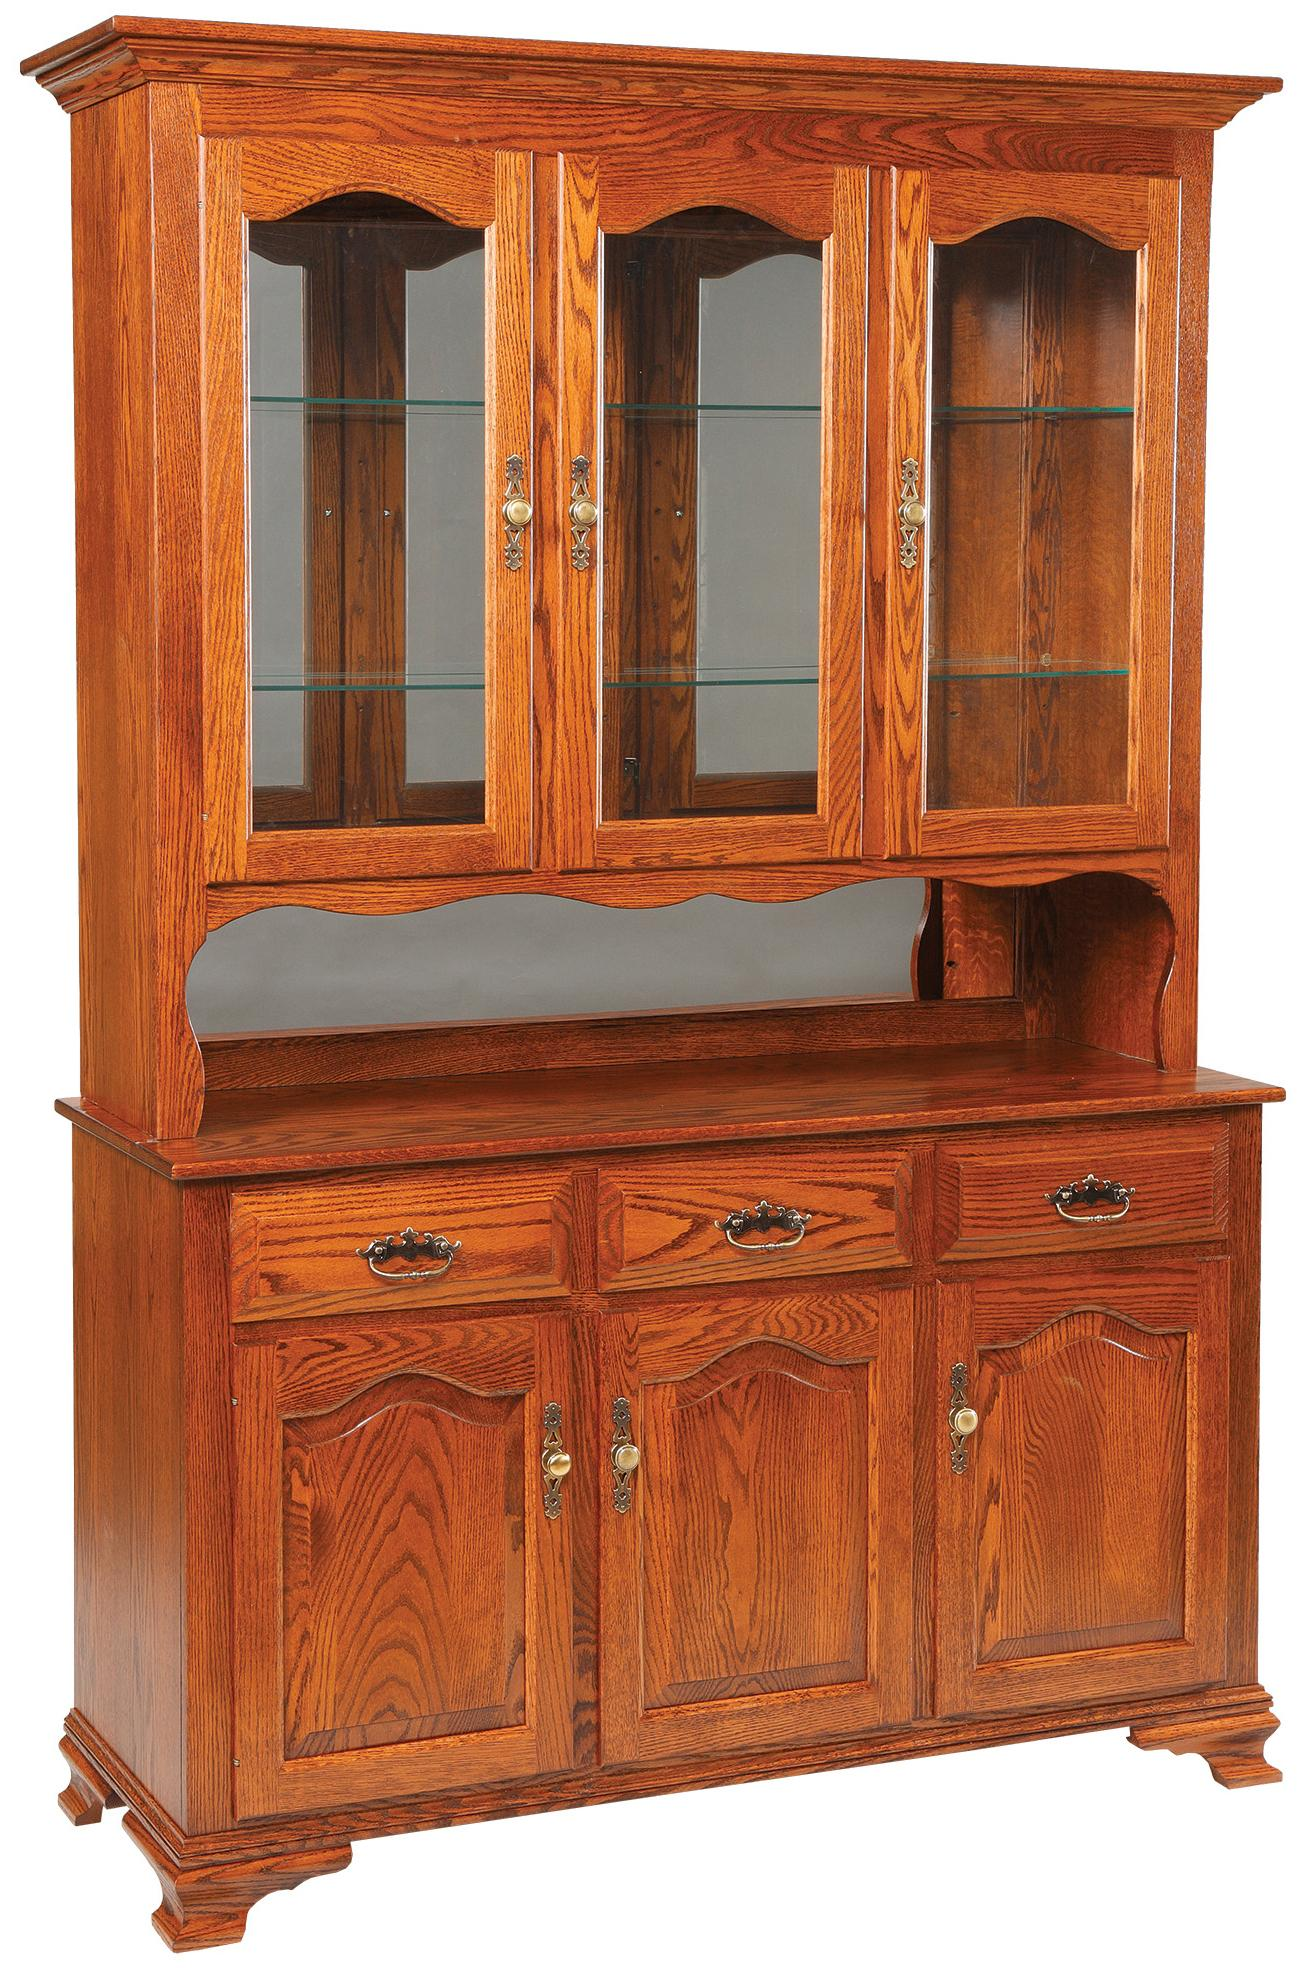 Terrific Hutch And Buffets Harvest Buffet W Hutch By Daniels Amish At Pilgrim Furniture City Download Free Architecture Designs Scobabritishbridgeorg